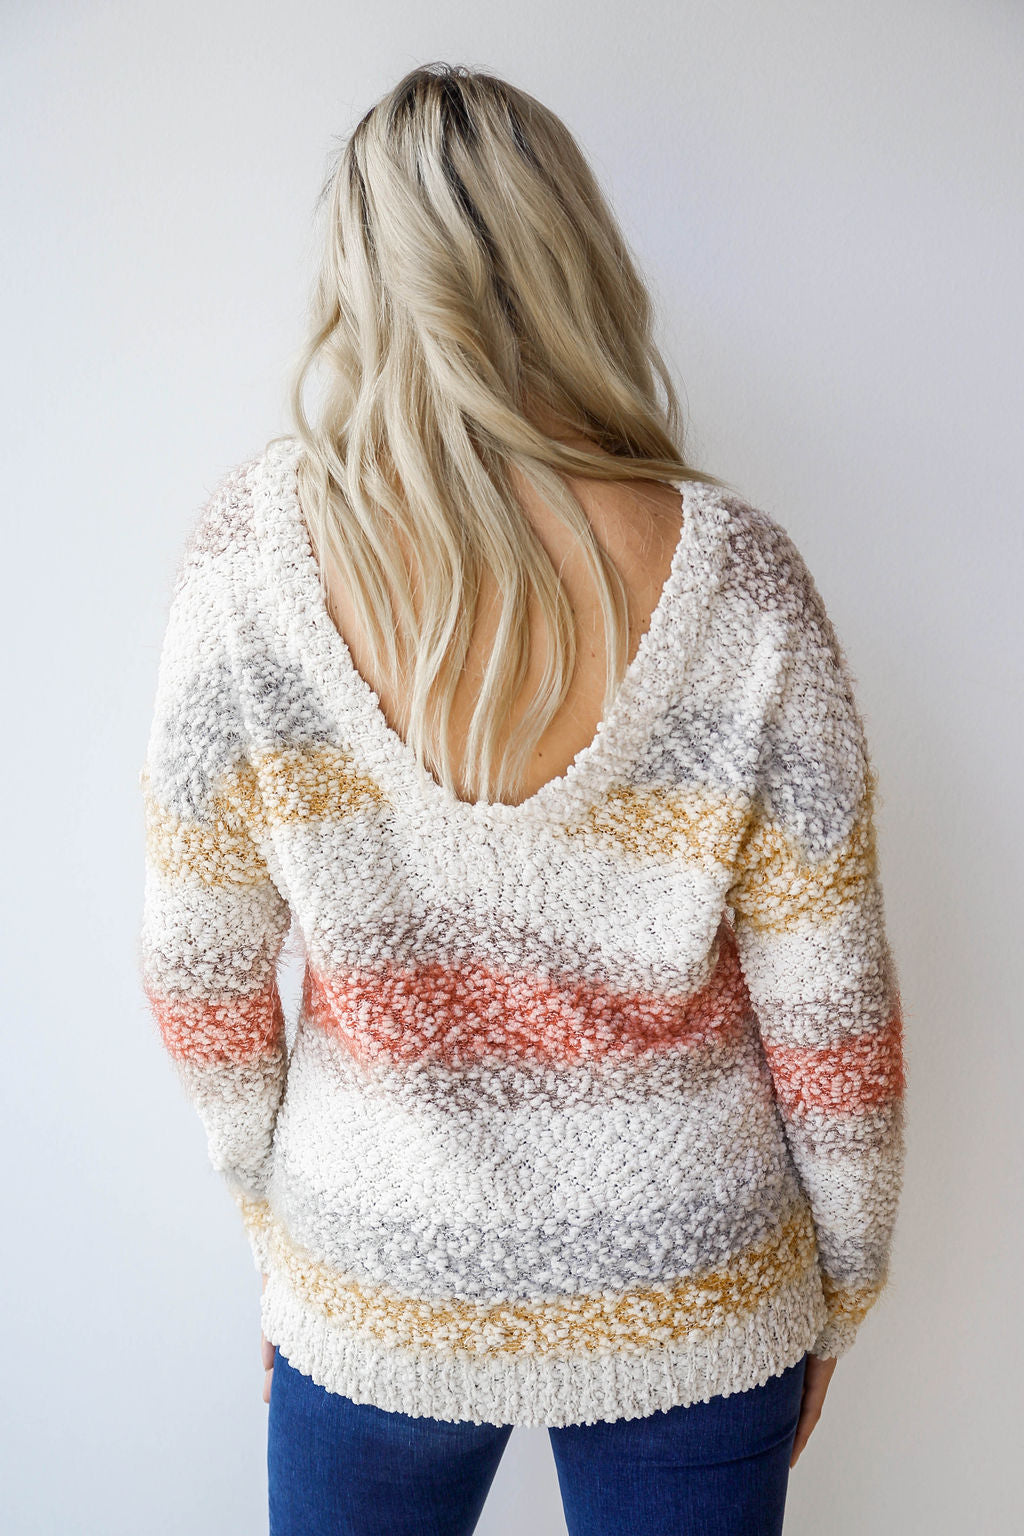 mode, survivor stripes sweater